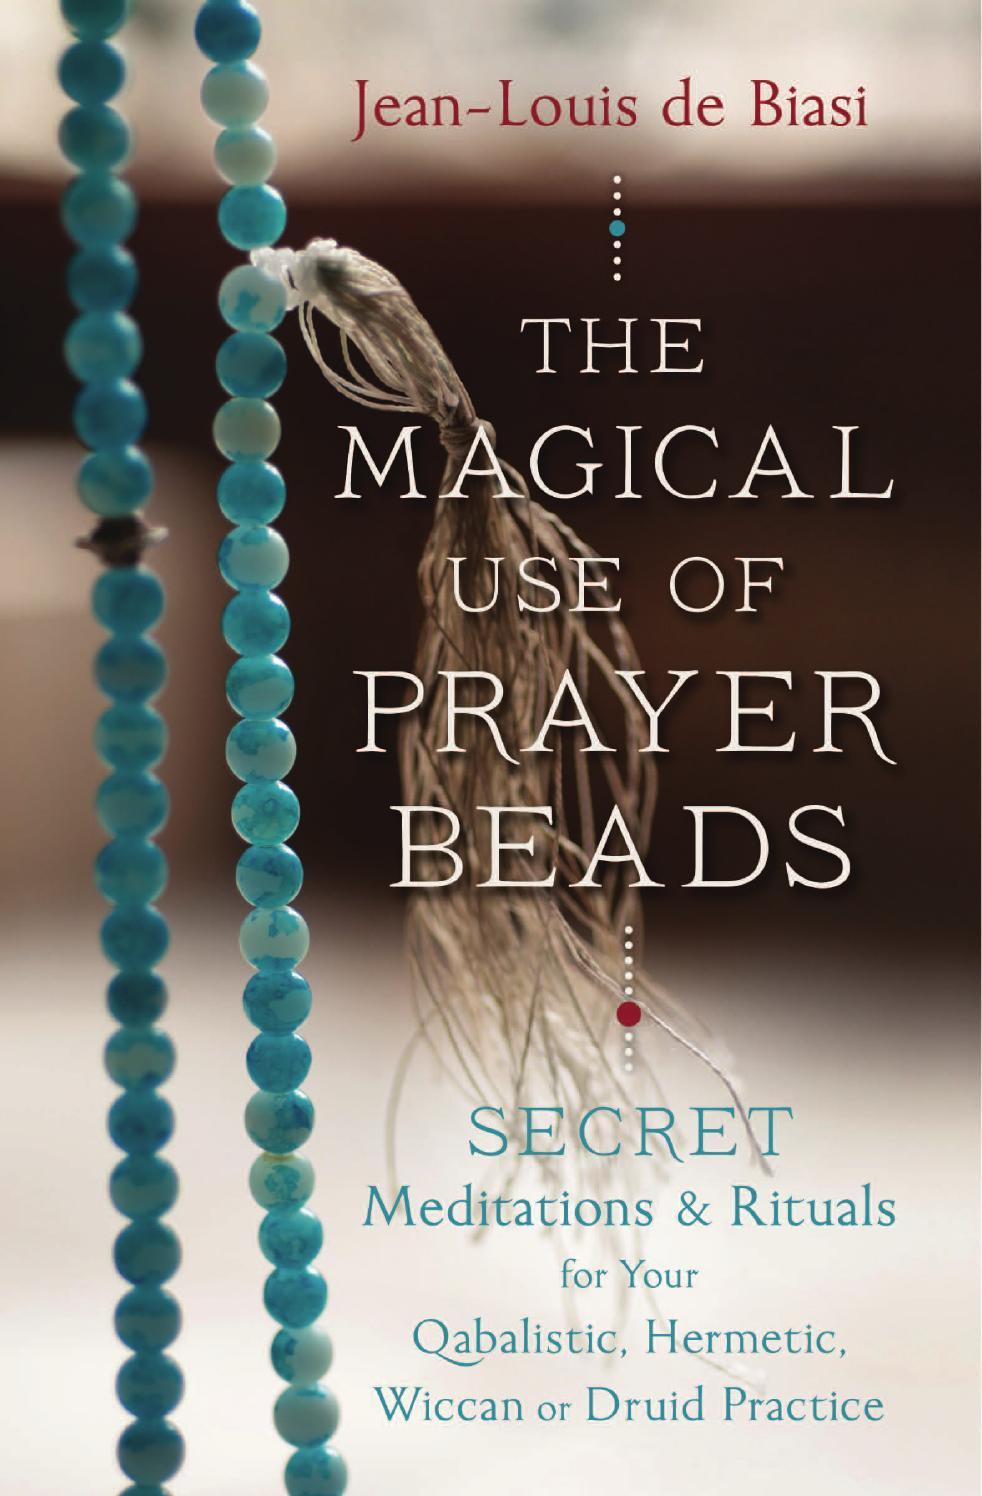 The magical use of prayer beads by jean louis de biasi by the magical use of prayer beads by jean louis de biasi by llewellyn worldwide ltd issuu buycottarizona